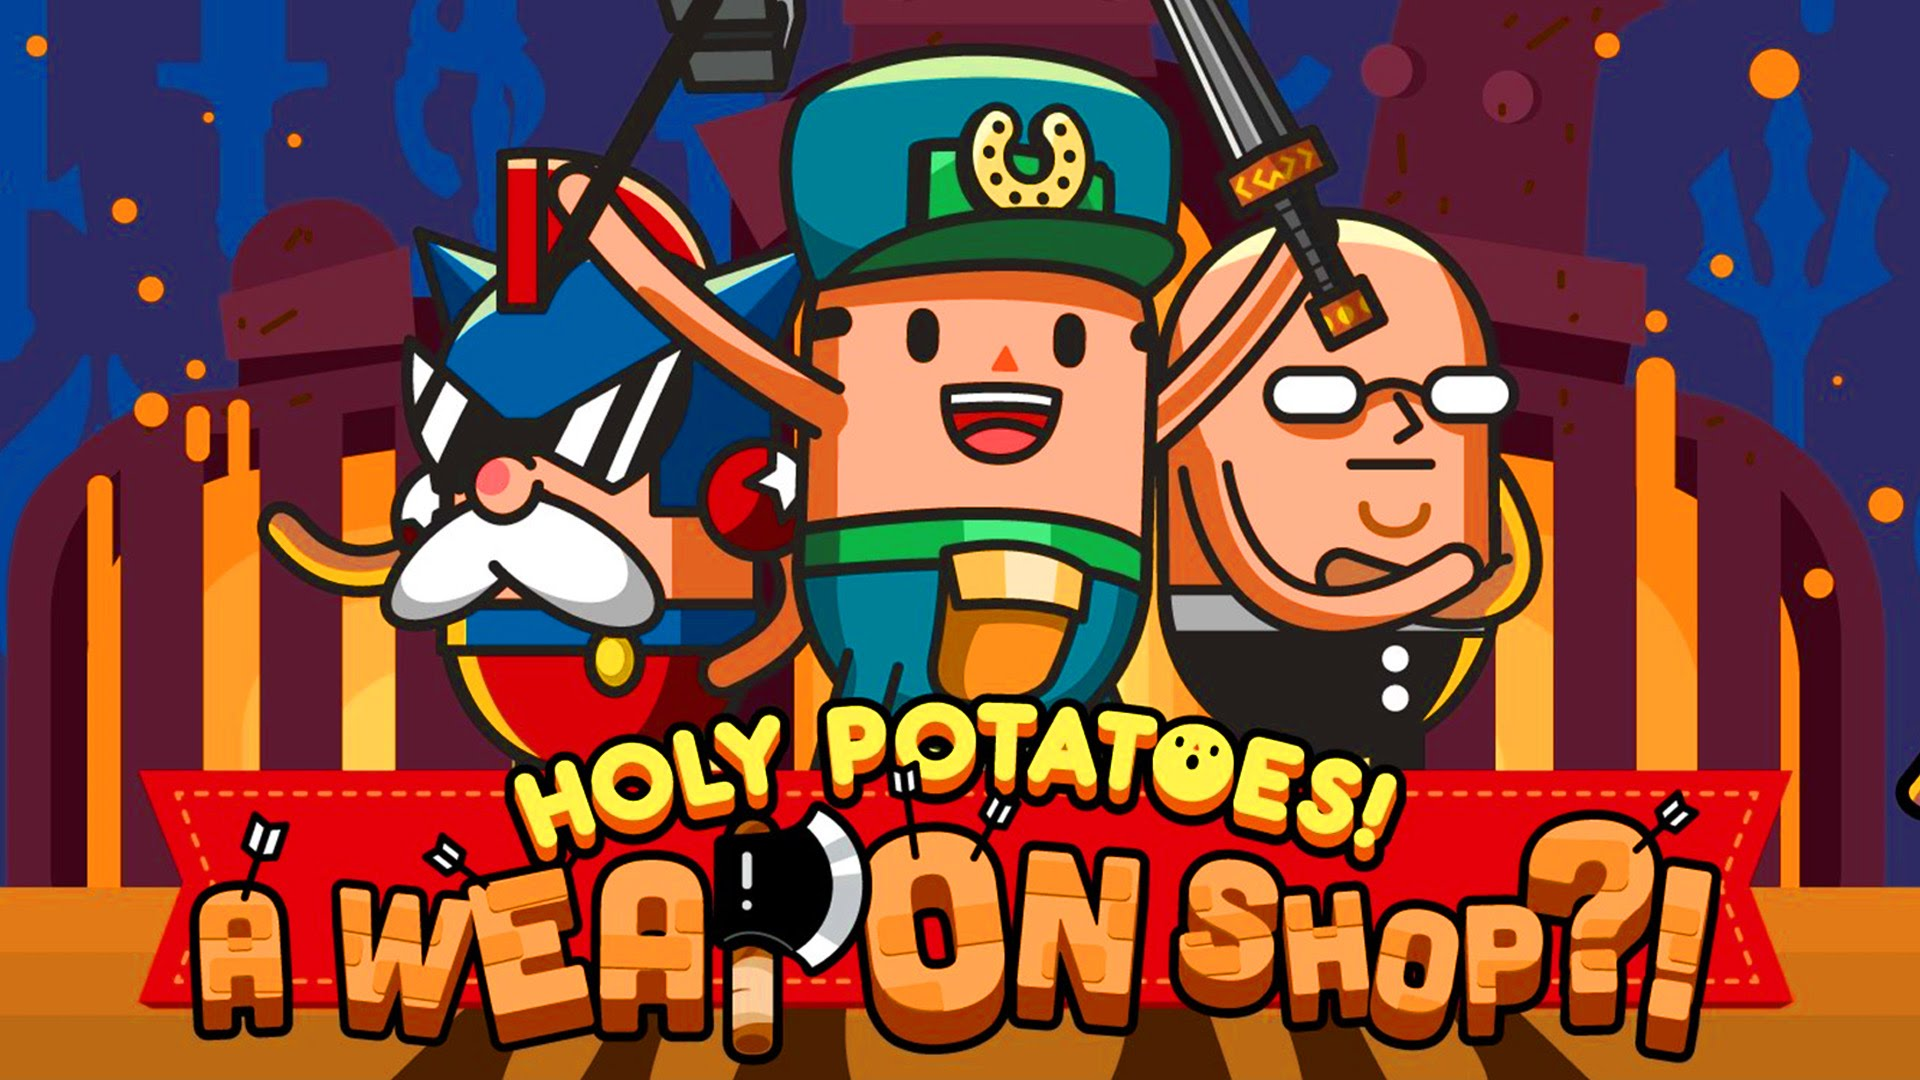 Review: Holy Potatoes! A Weapon Shop?! By Daylight Studios